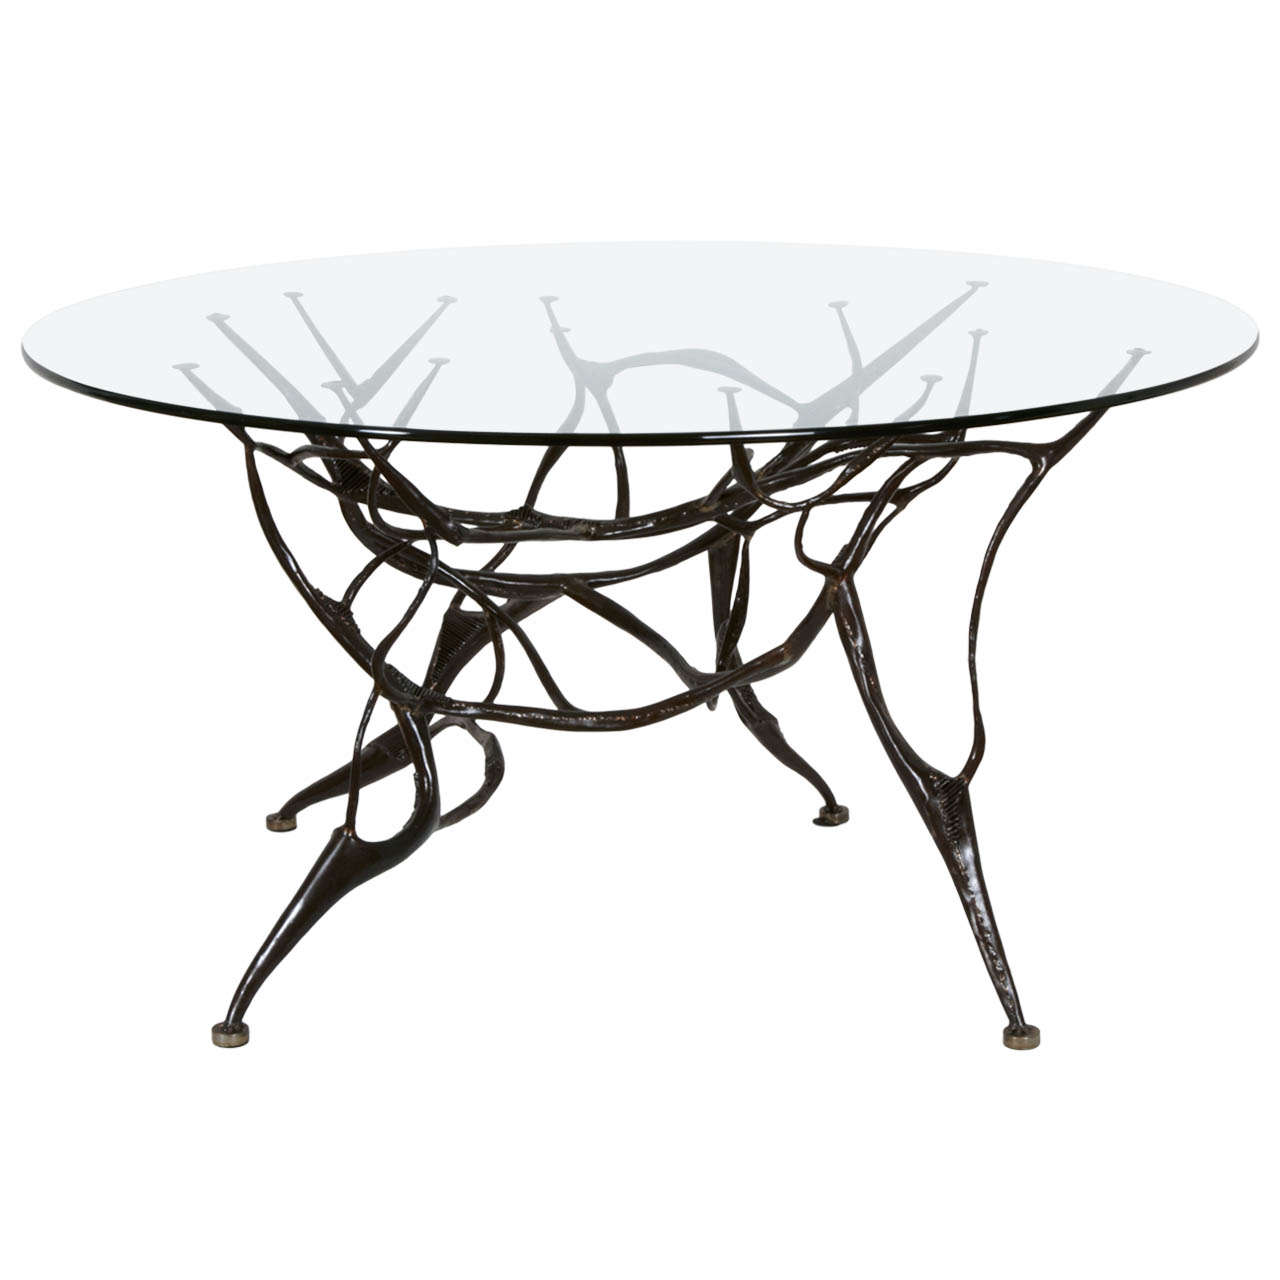 Coffee Table by Manuel Simon 2009 at 1stdibs